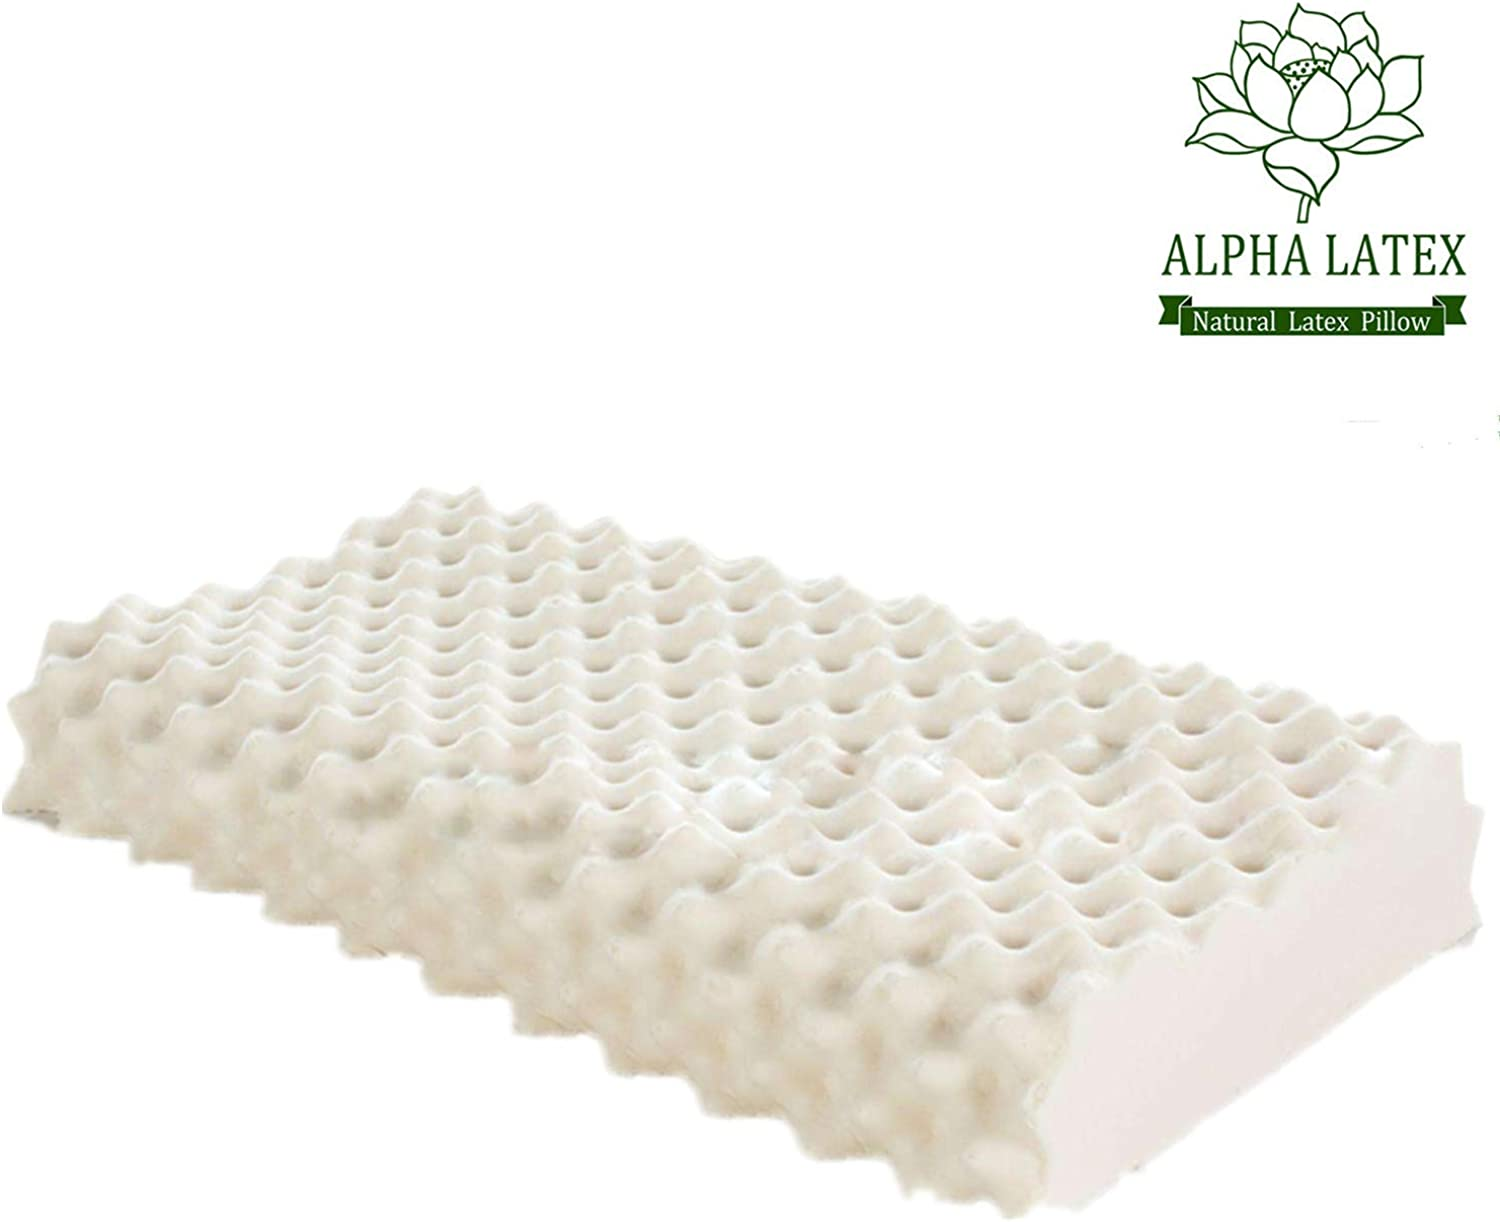 ALPHA LATEX Latex Pillow, Thailand Natural Latex Massage Pillow for Stress Relief Soft Breathable Organic Latex Cervical Pillow - Promote Blood Circulation and Improve Sleeping Quality